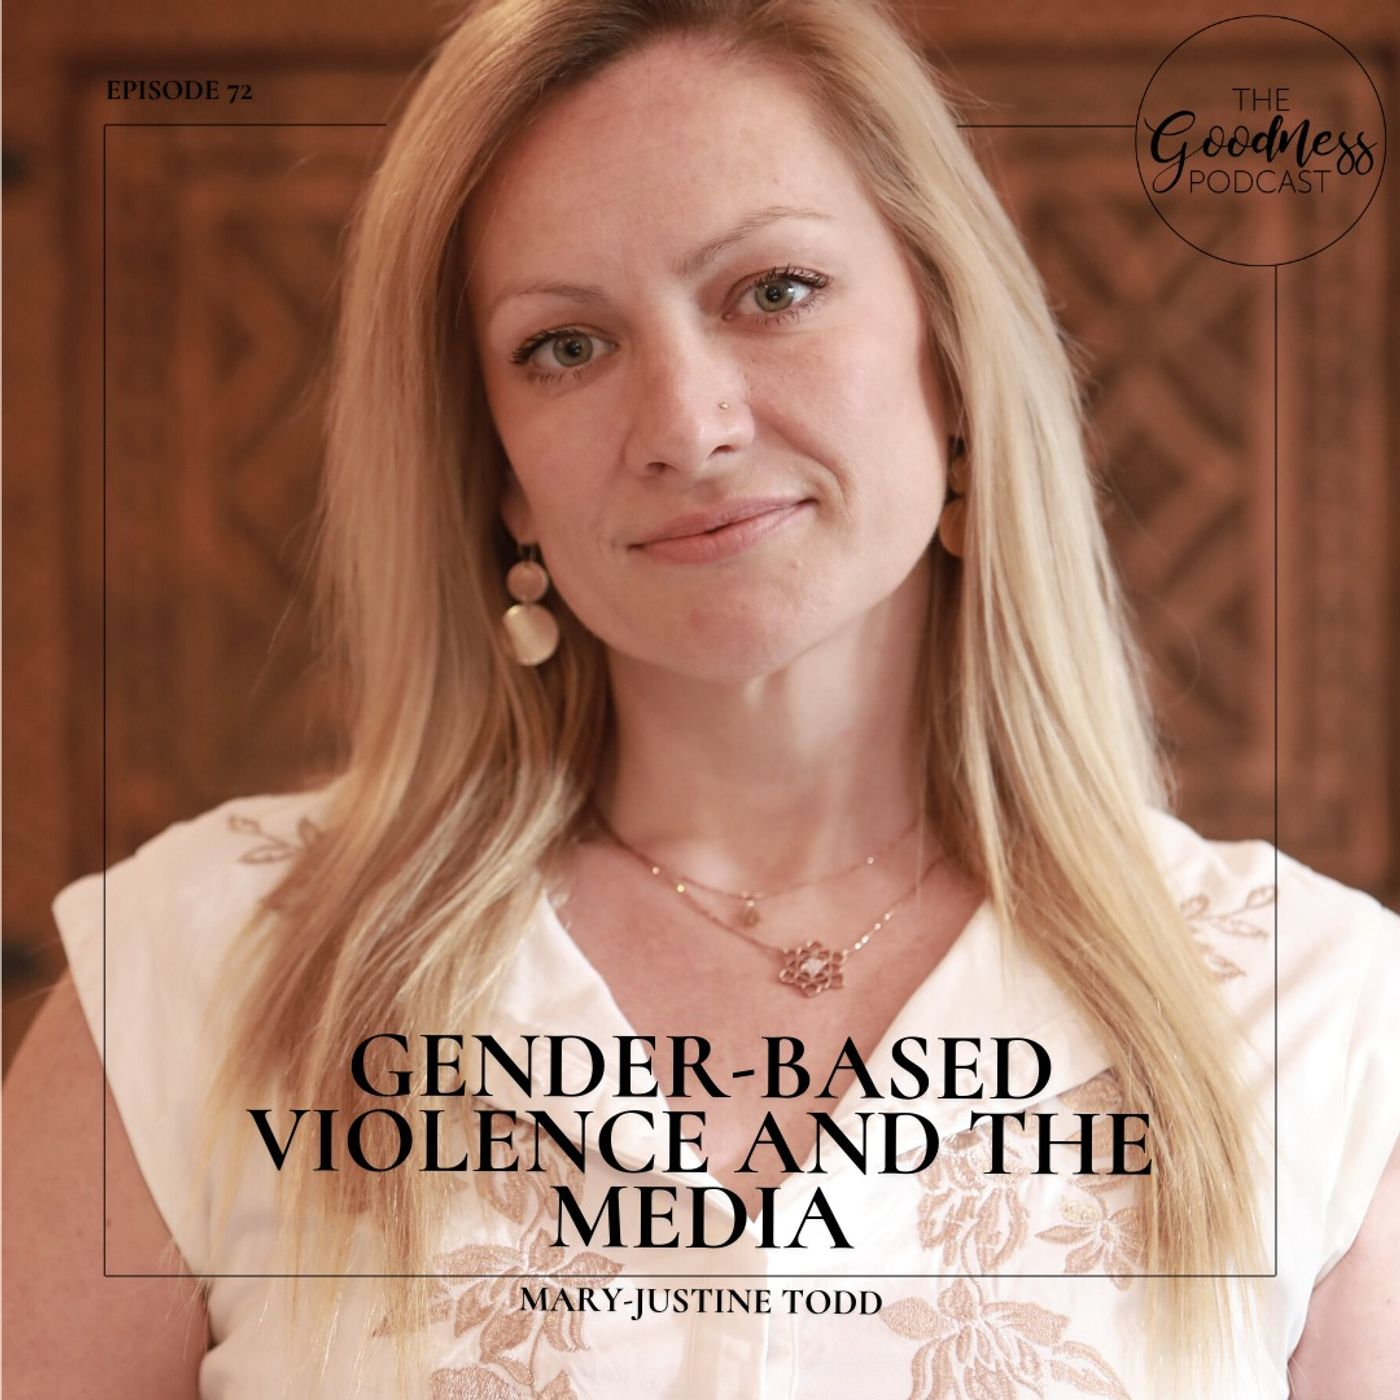 Mary-Justine Todd: Gender-Based Violence and the Media